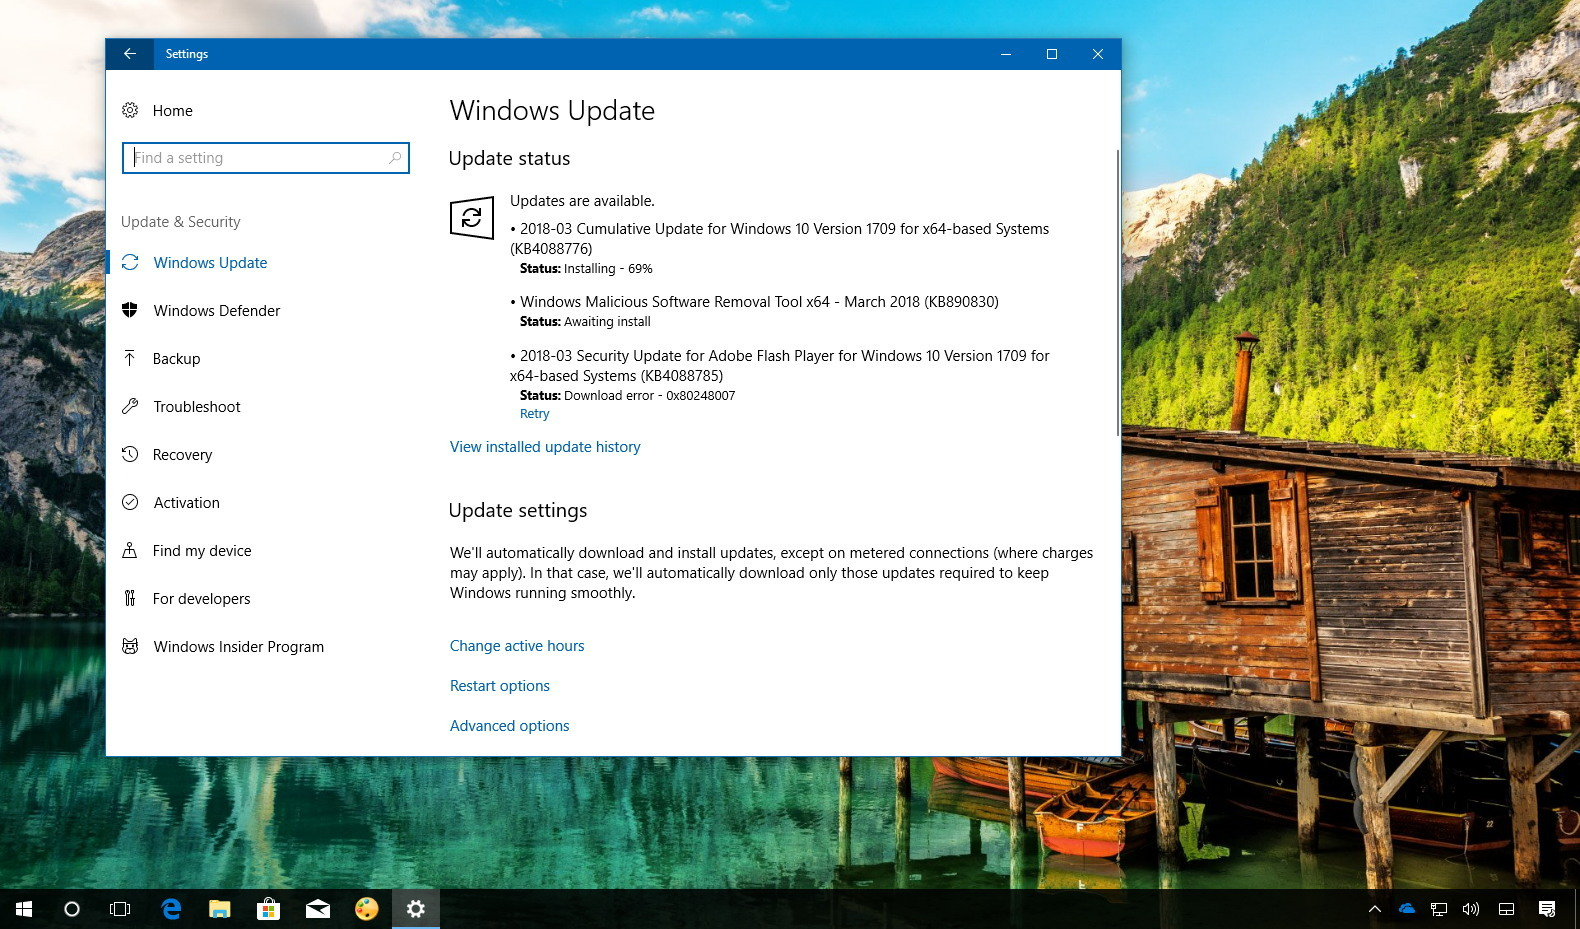 Update for windows 10 version 1709 for x64-based systems